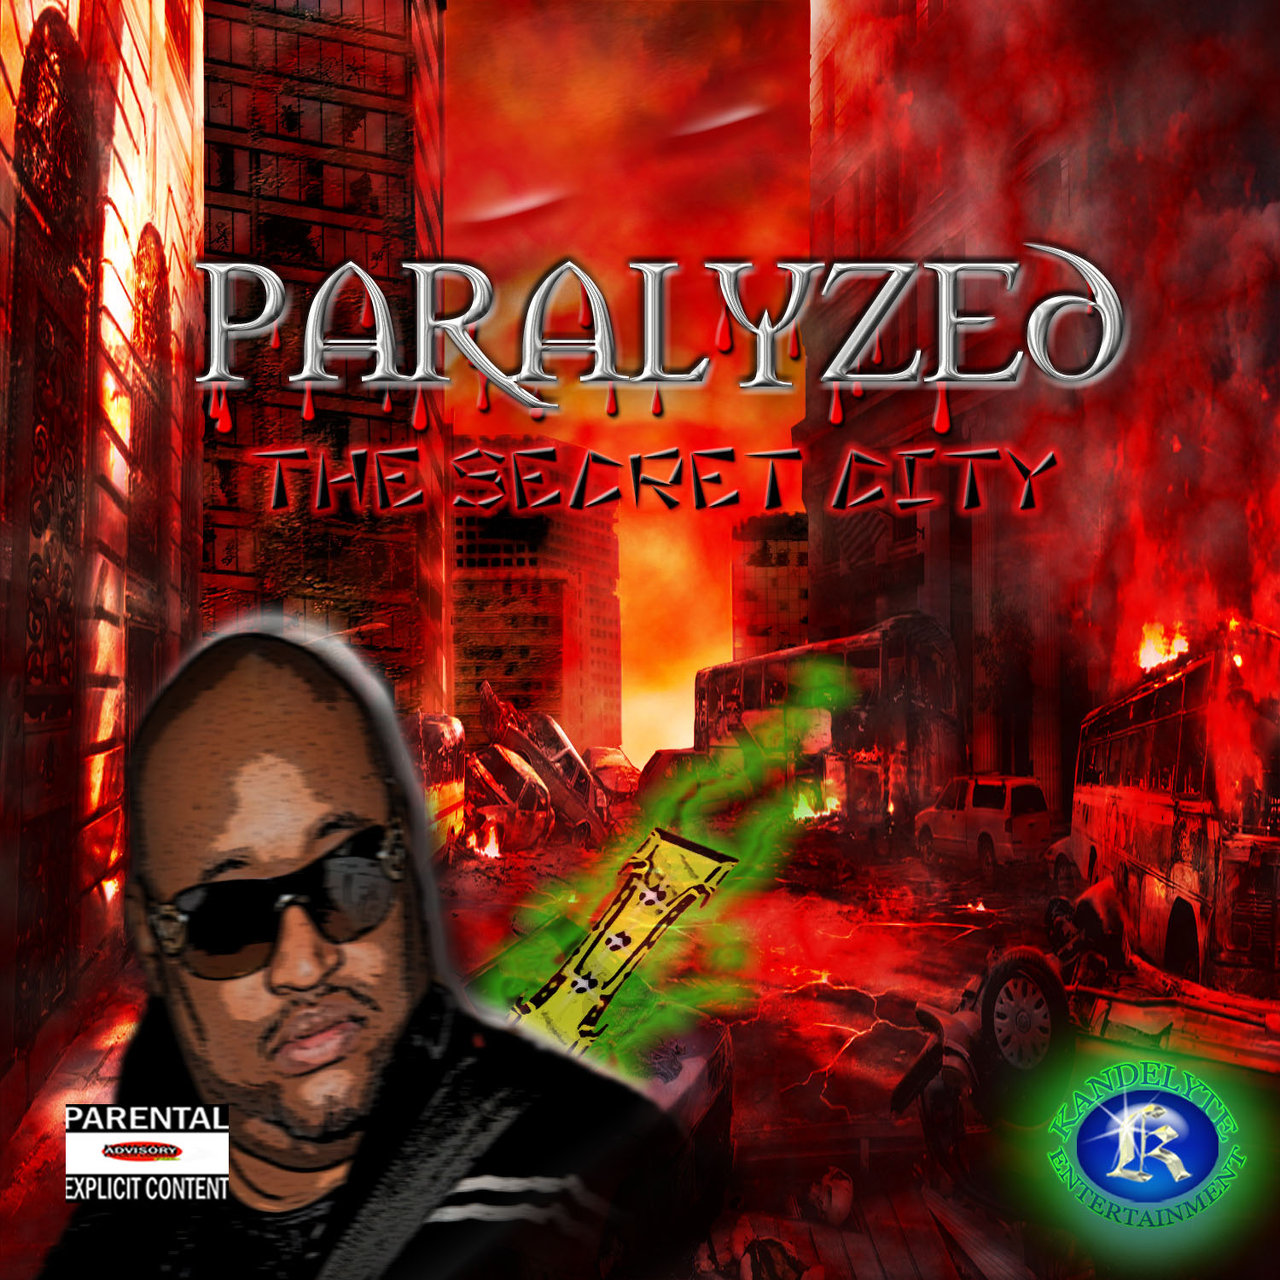 Paralyzed-Blakk North copy